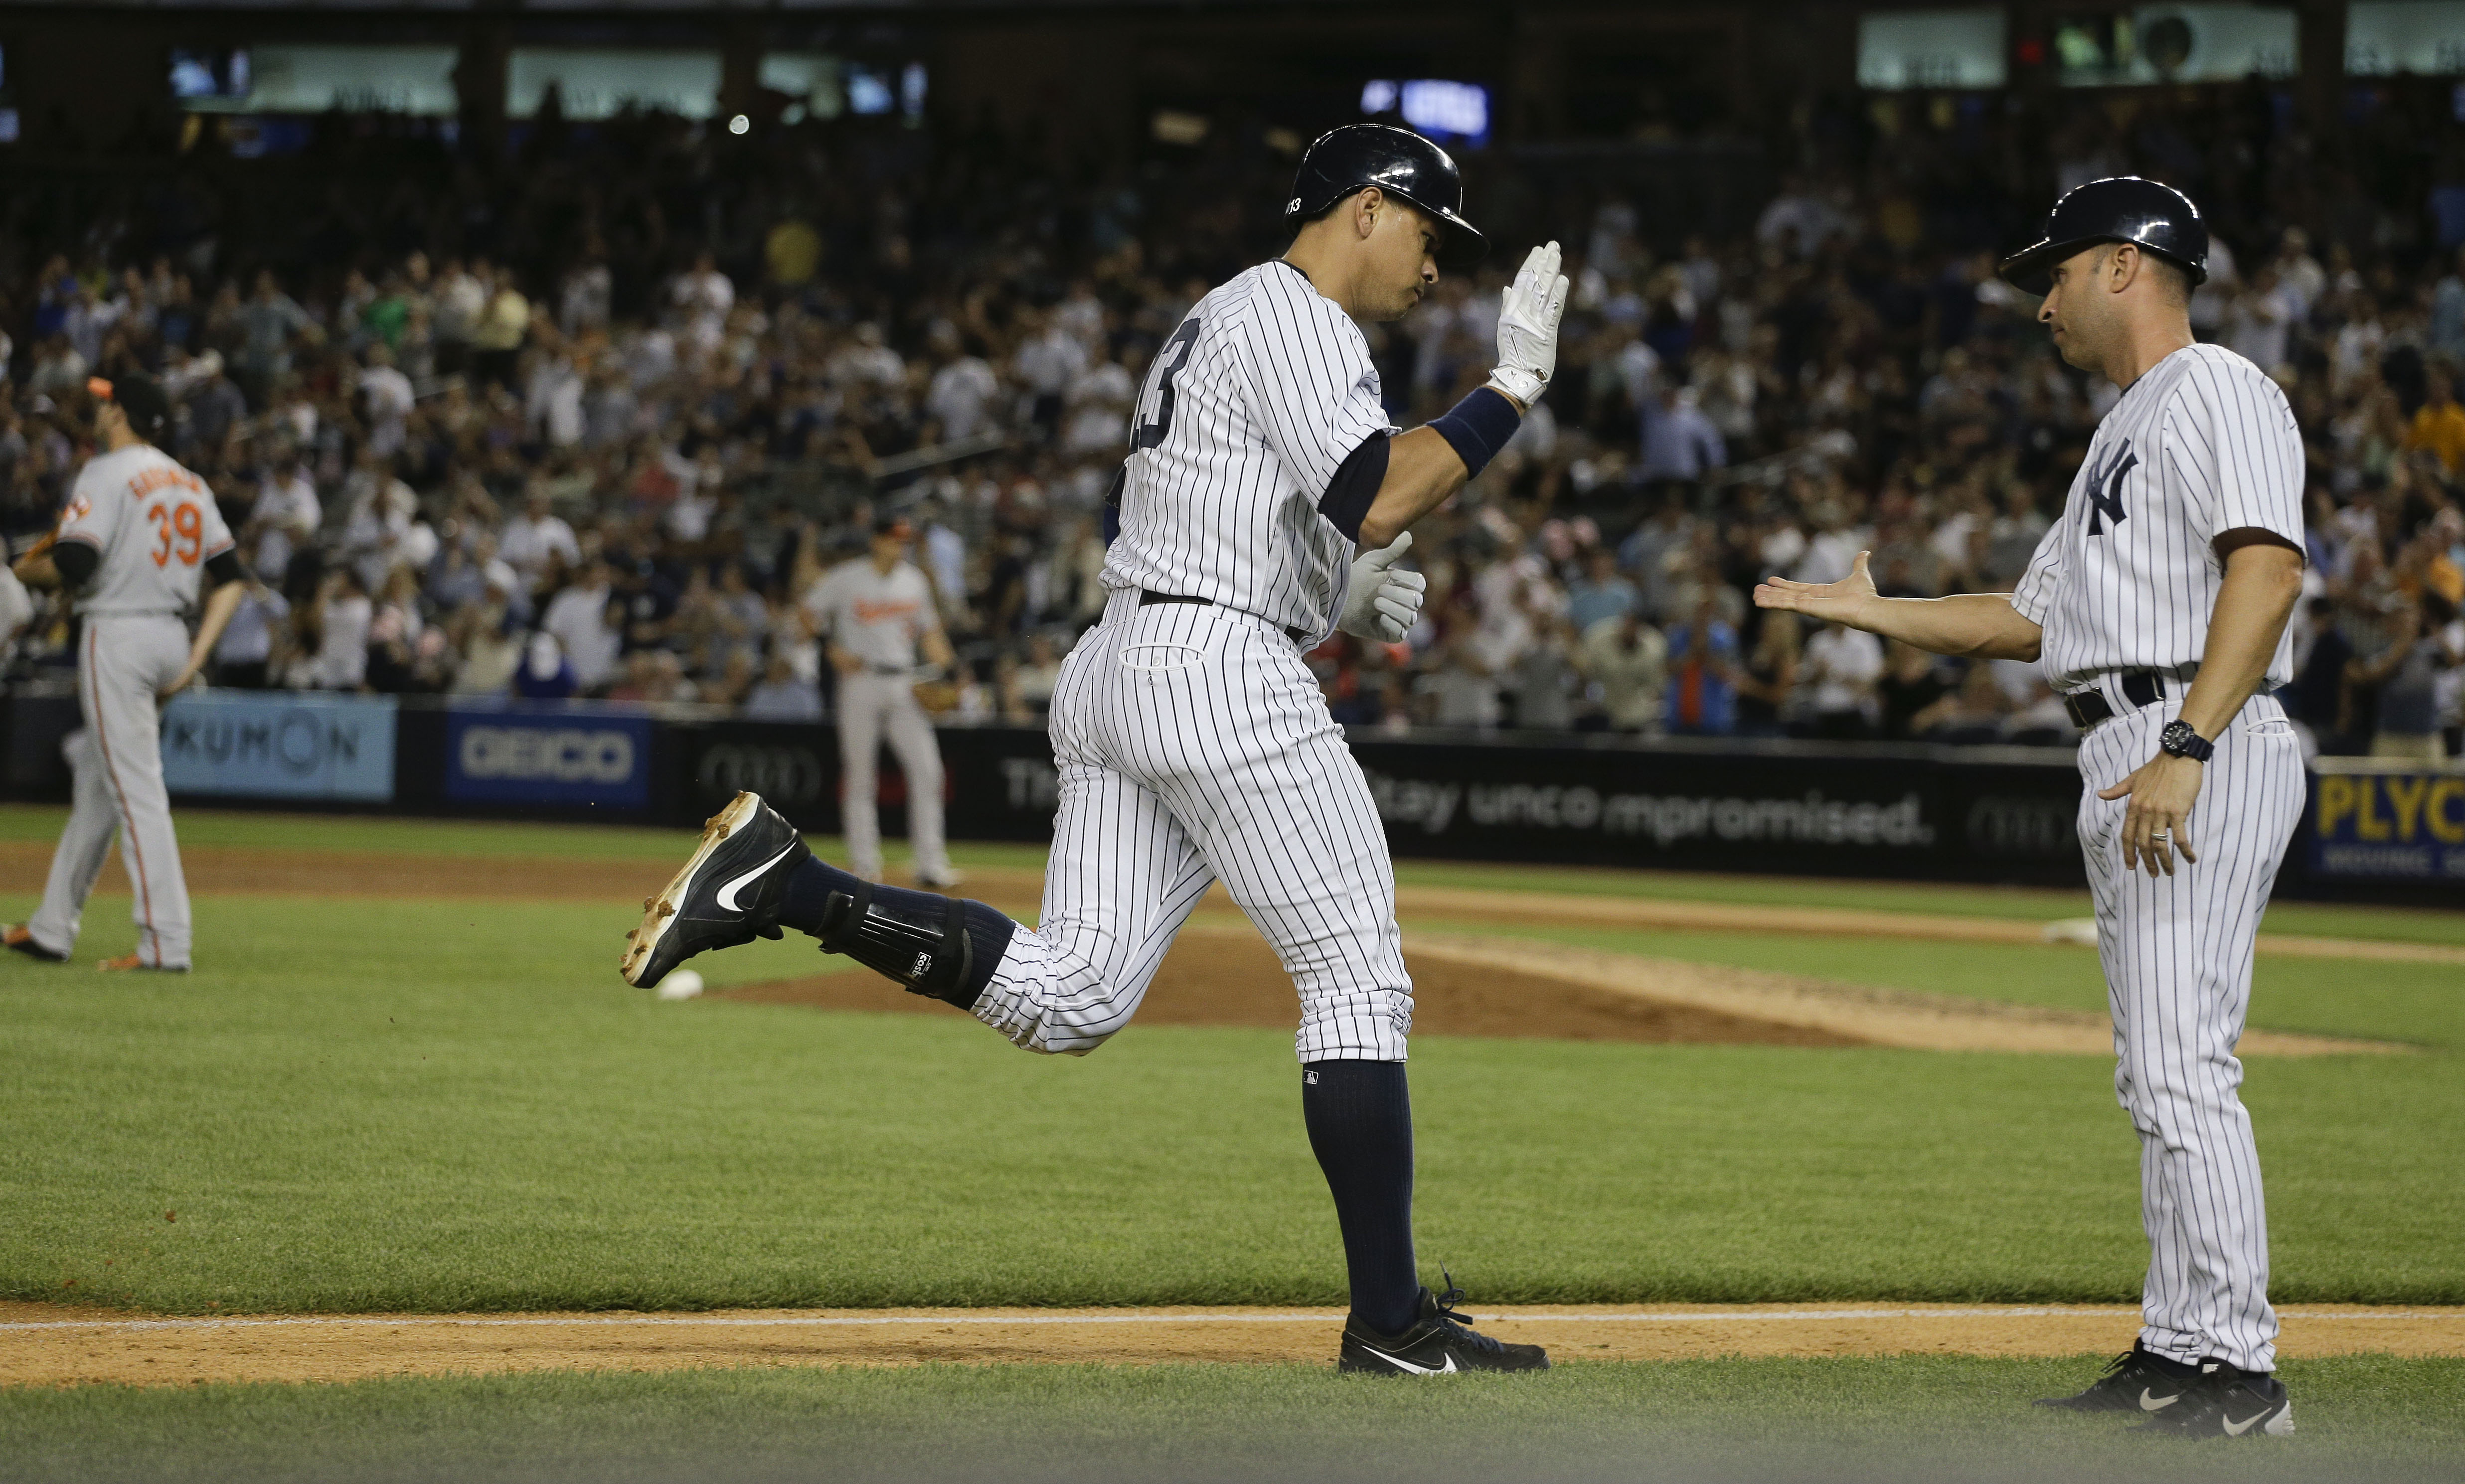 New York Yankees designated hitter Alex Rodriguez is greeted by third base coach Joe Espada as he rounds the bases after hitting a solo home run against the Baltimore Orioles during the fifth inning of a baseball game, Wednesday, July 22, 2015, in New Yor